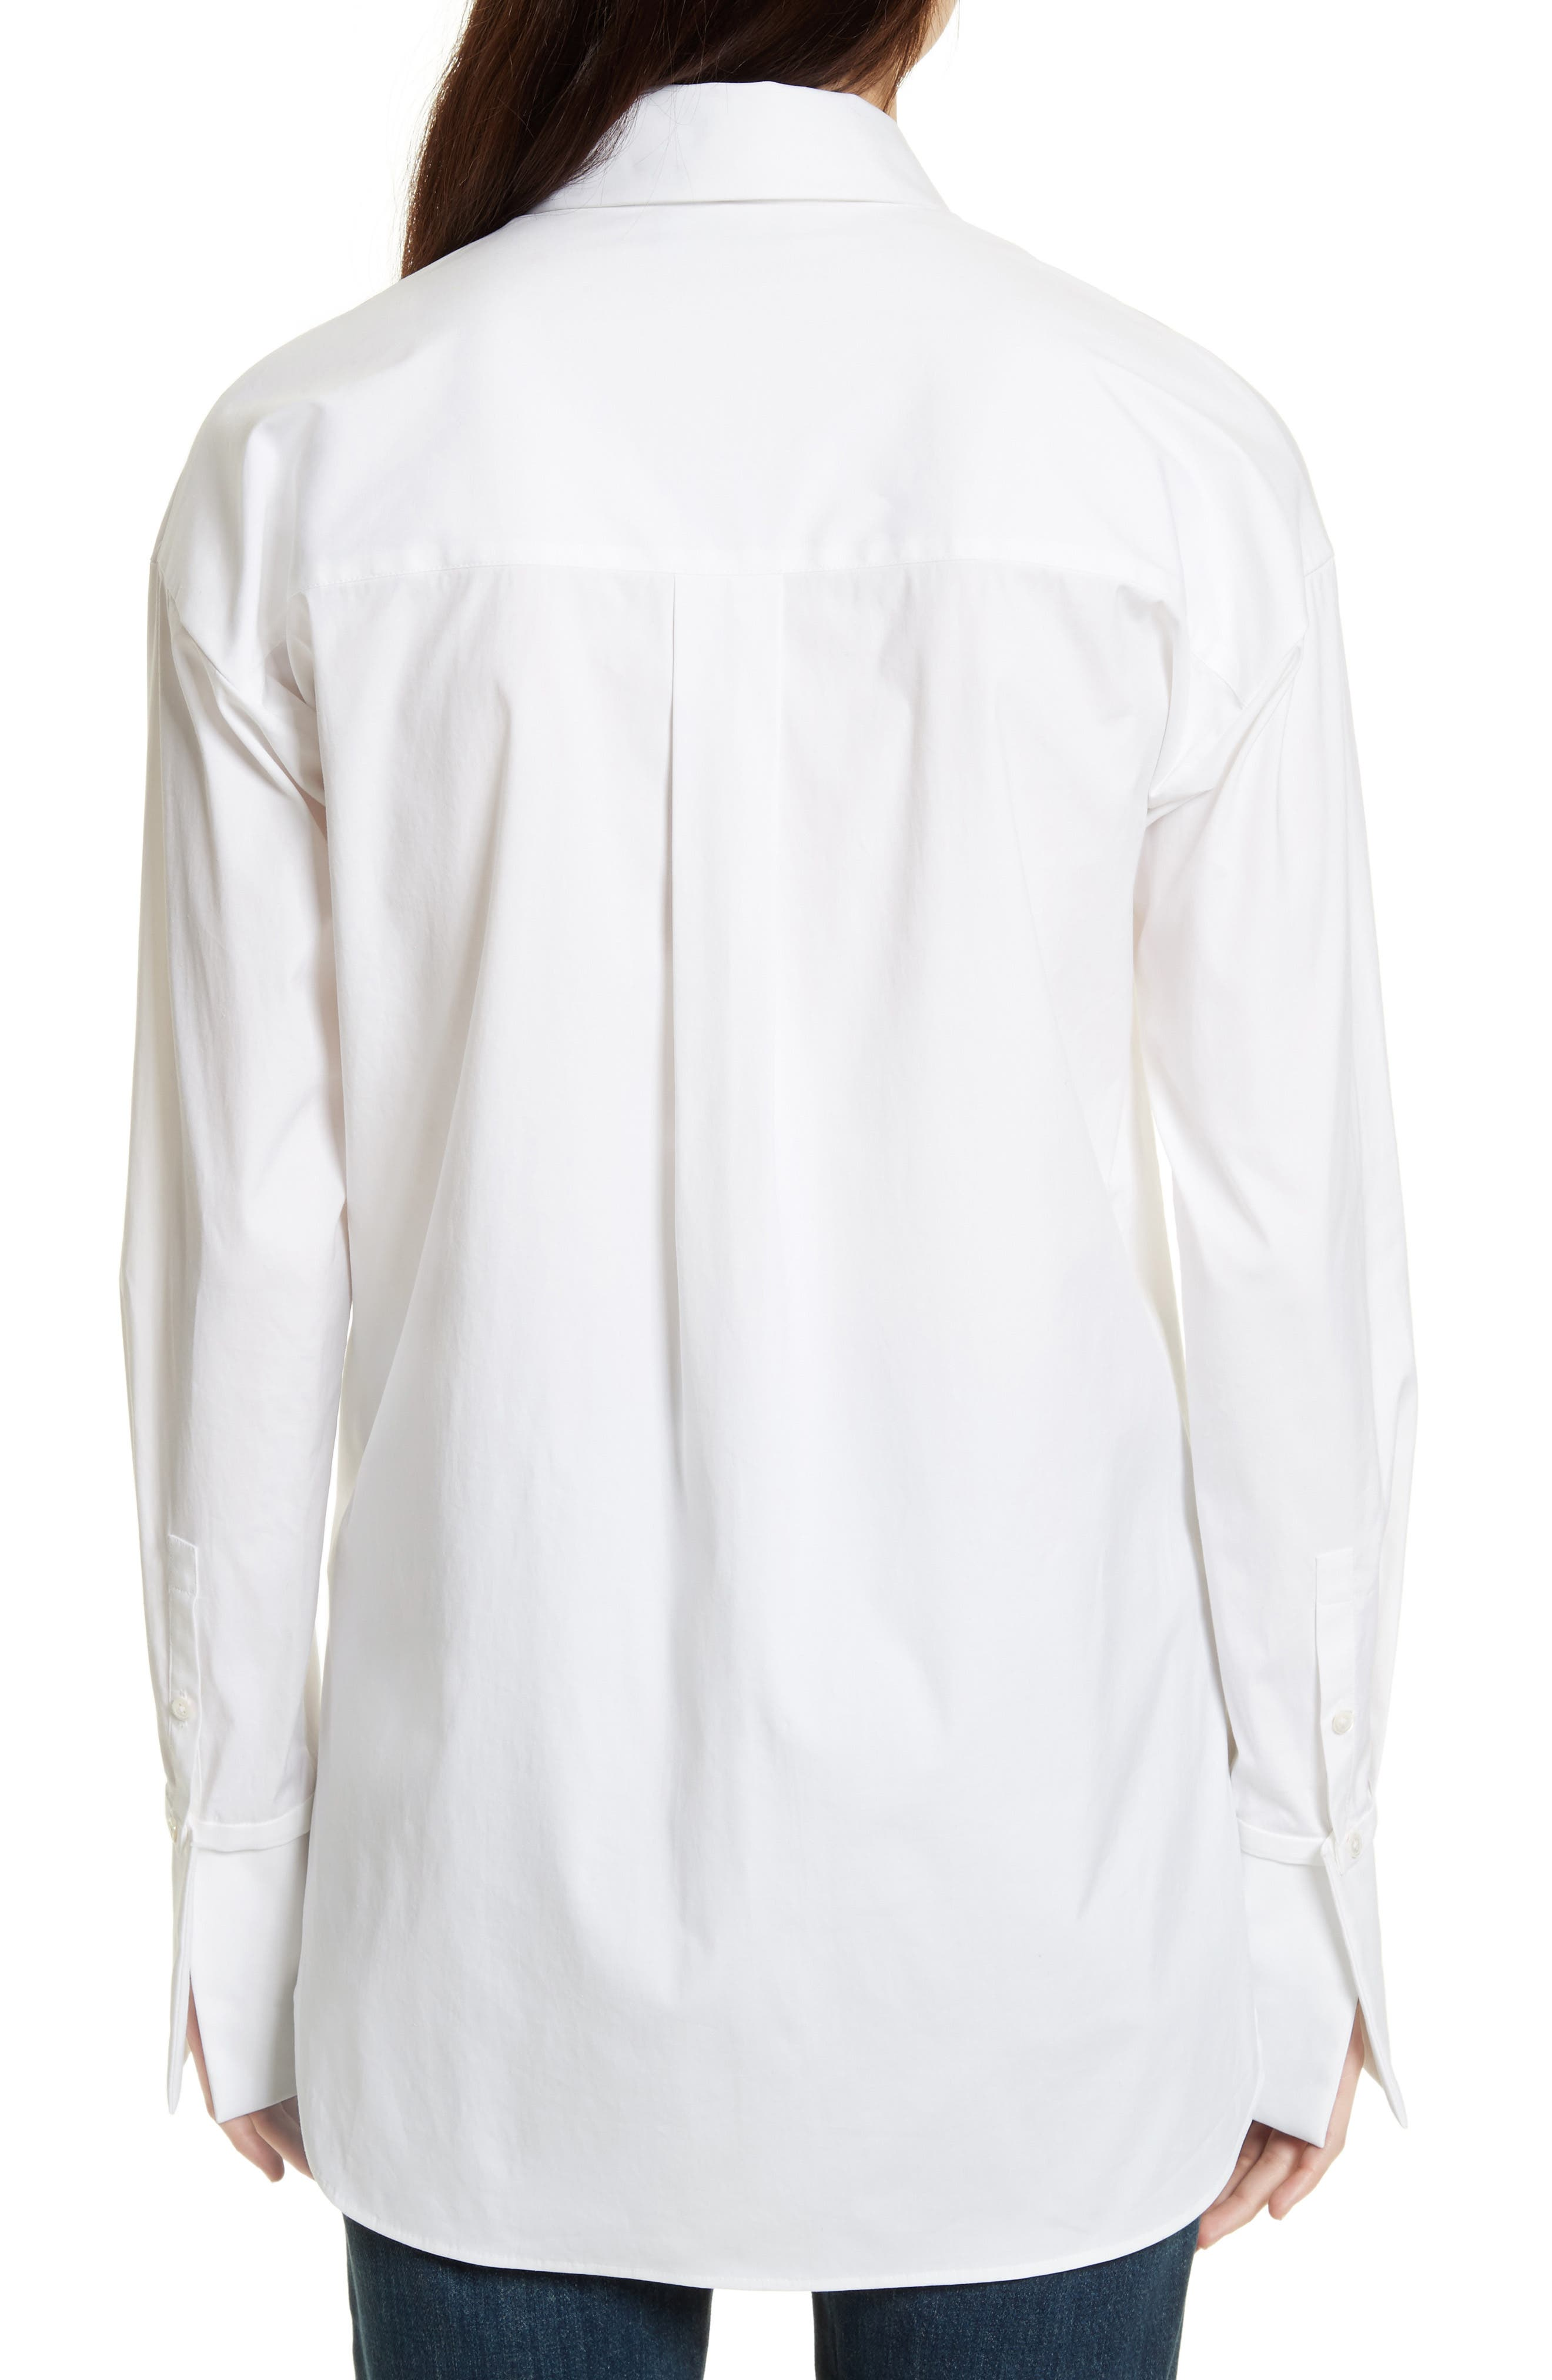 THEORY, Cotton Poplin Boy Tunic, Alternate thumbnail 2, color, 100